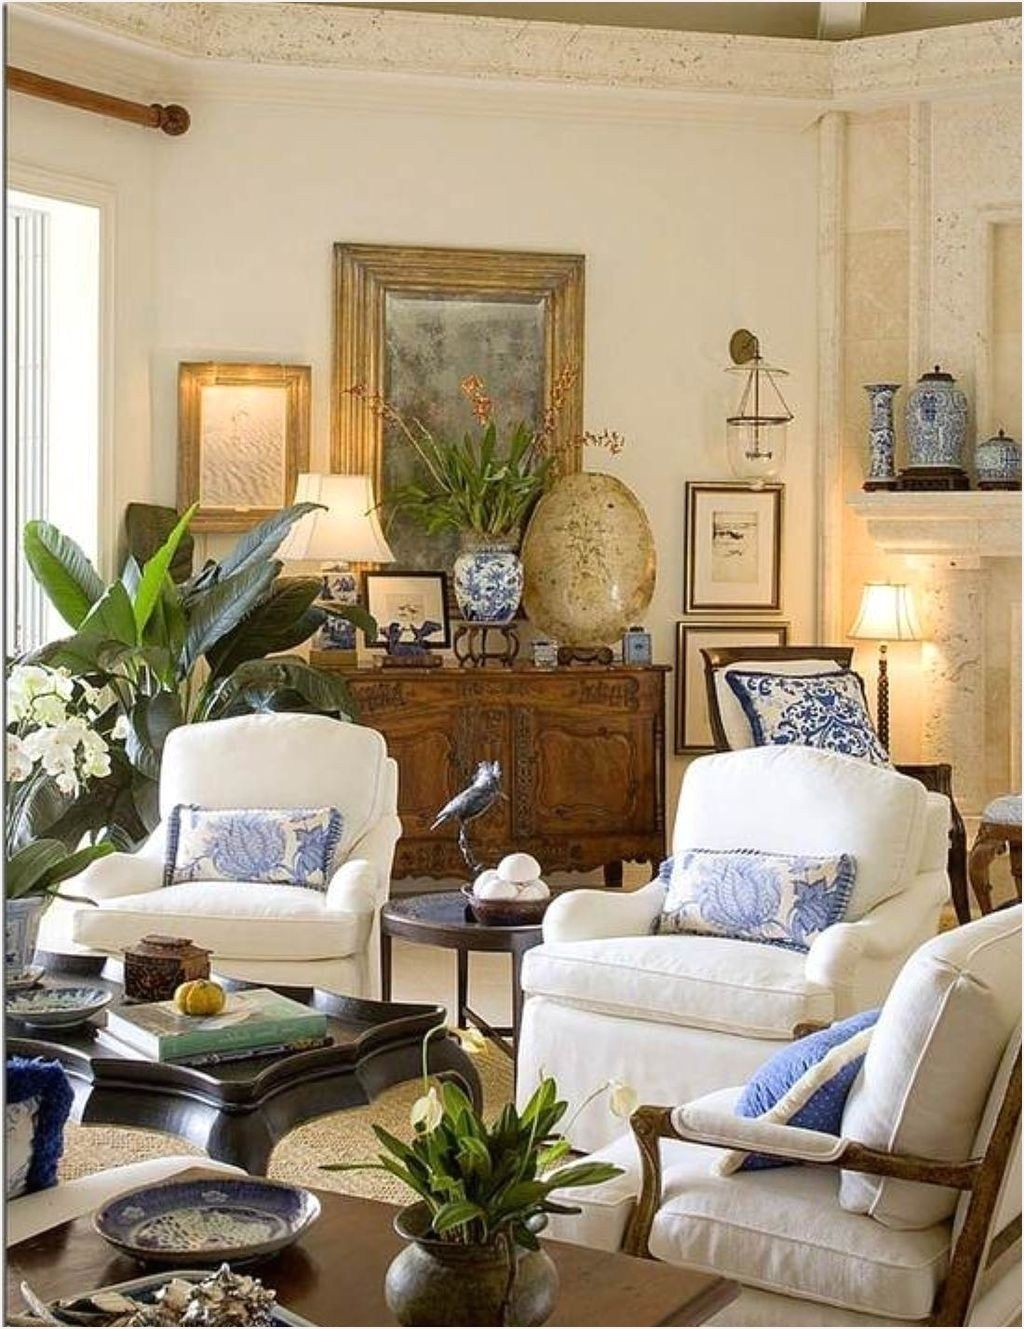 43 Creative Ideas For Small Spaces Living Room Decor Traditional Classic Living Room Living Room Designs